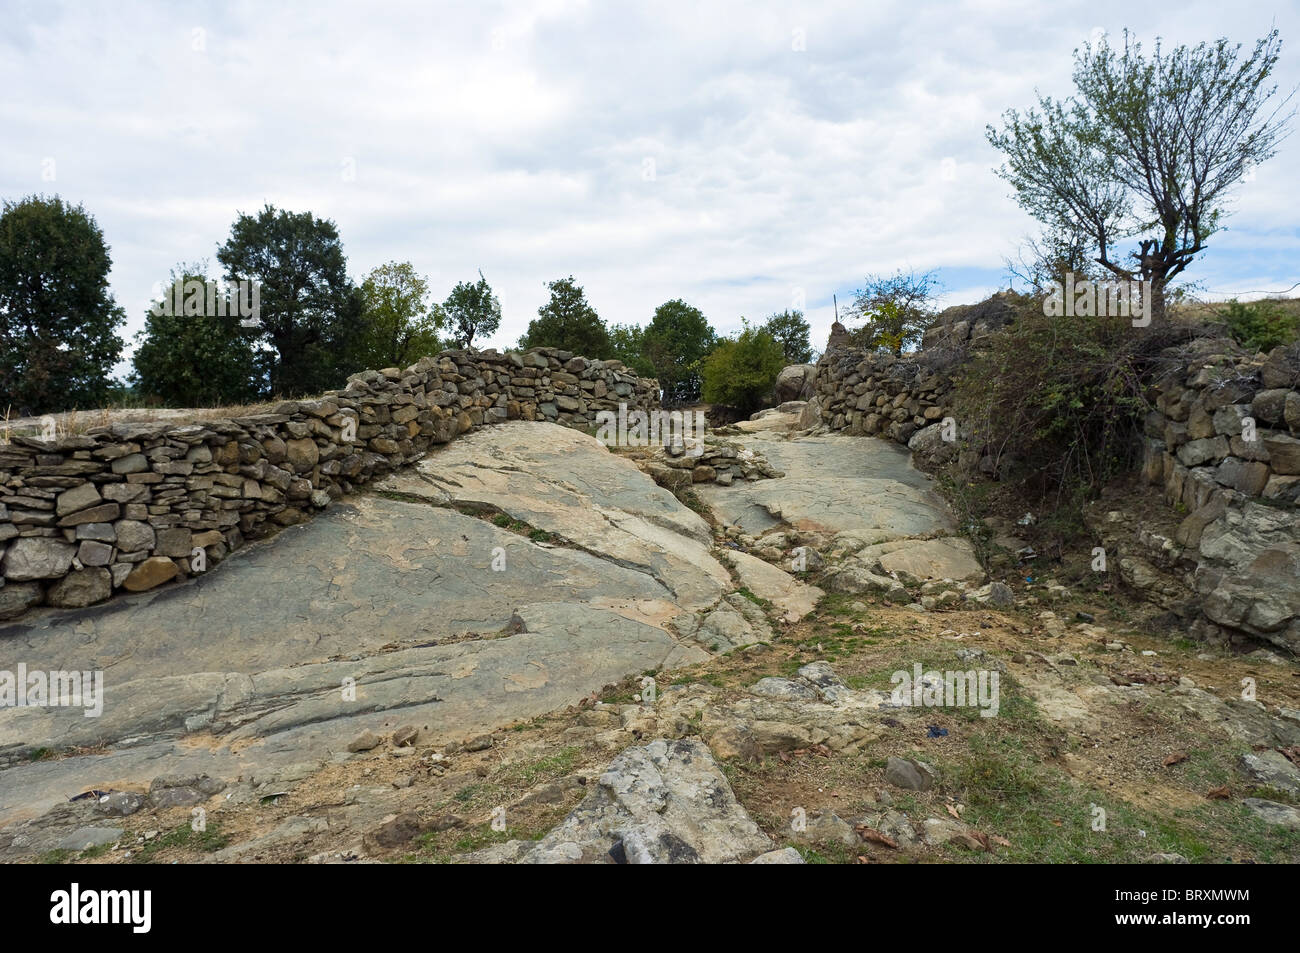 Stone Wall Fence - Stock Image